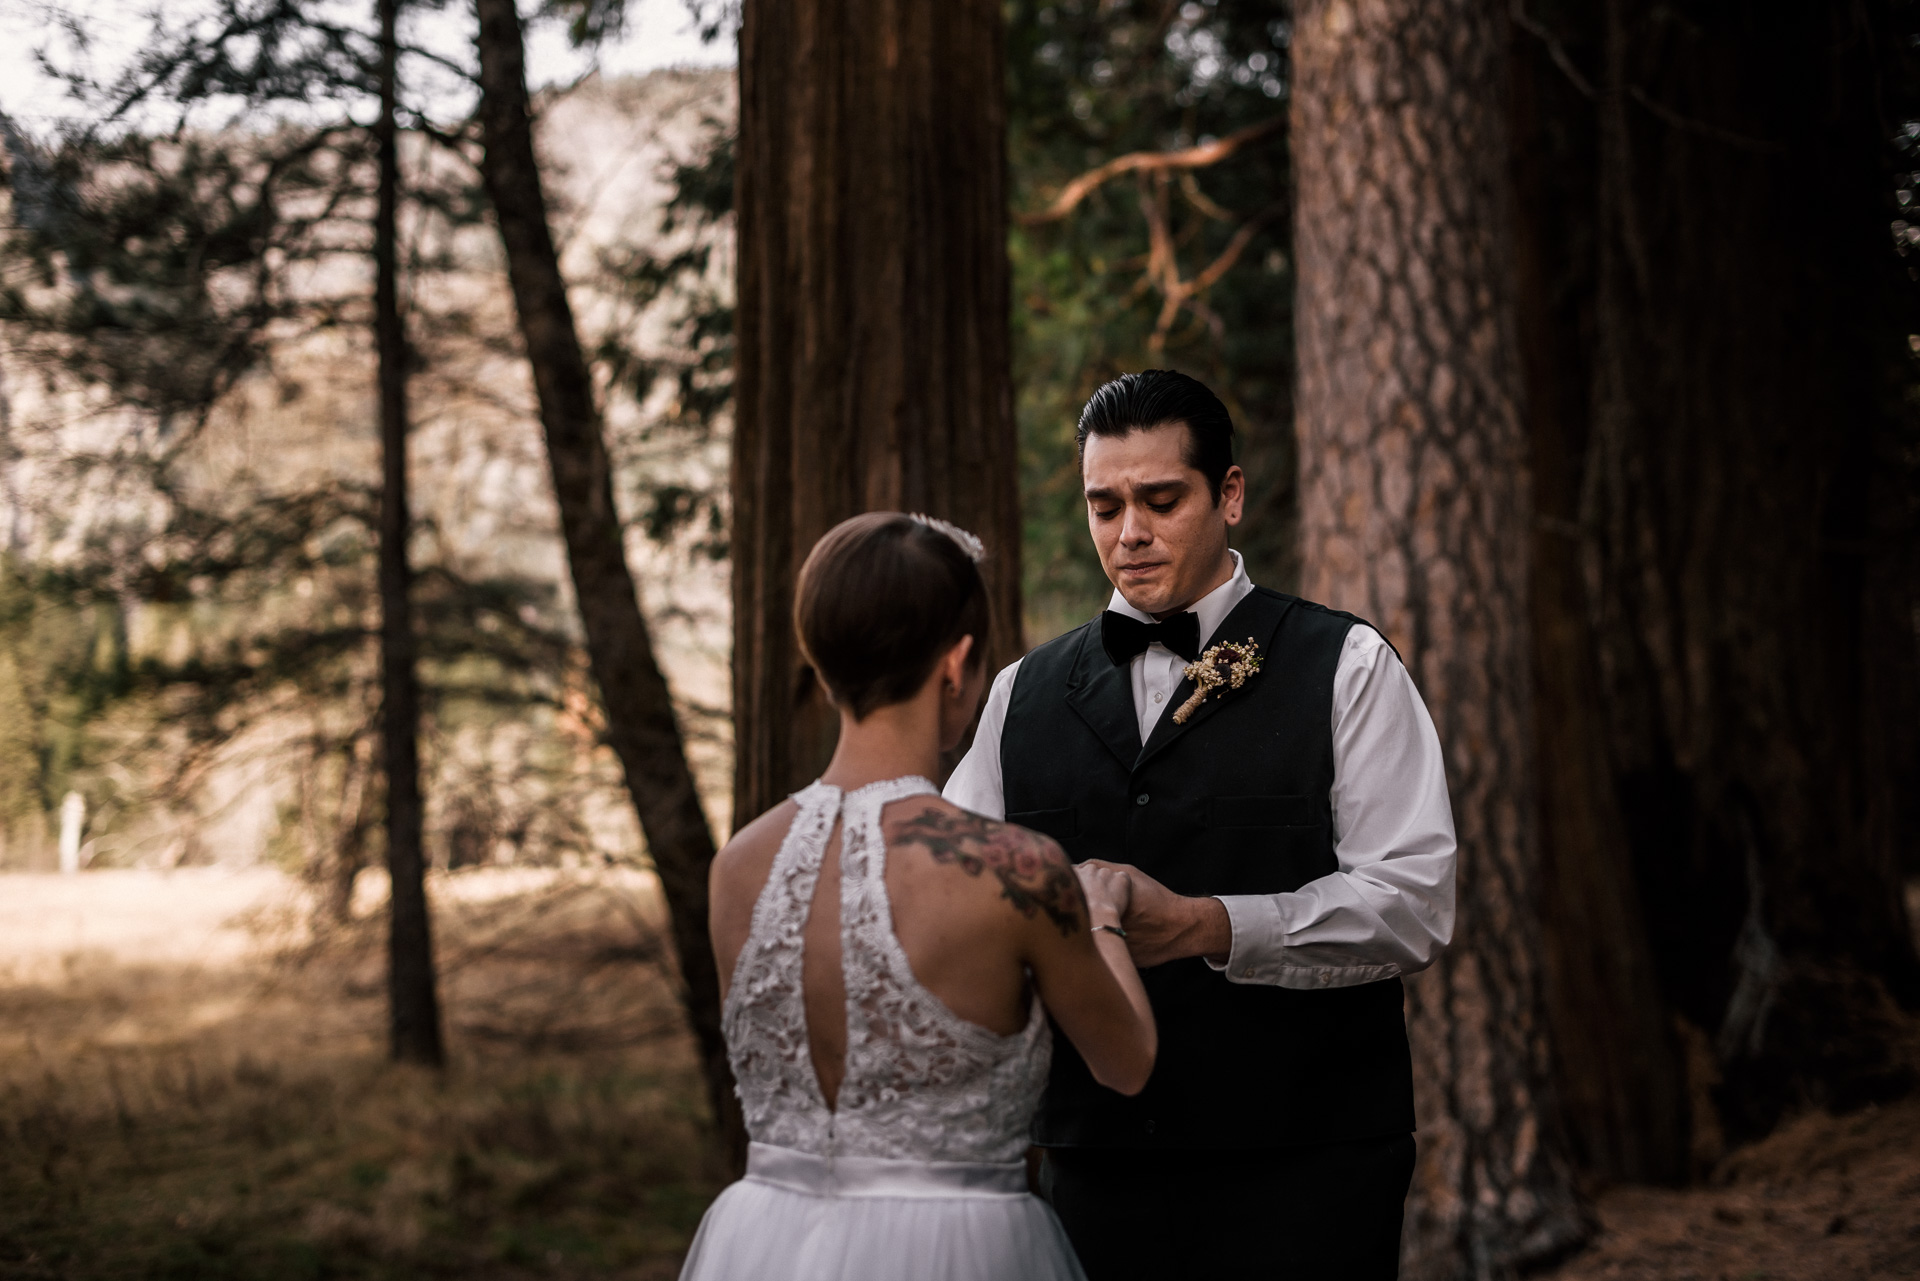 Yosemite elopement photographer captures groom's tears as he states his vow